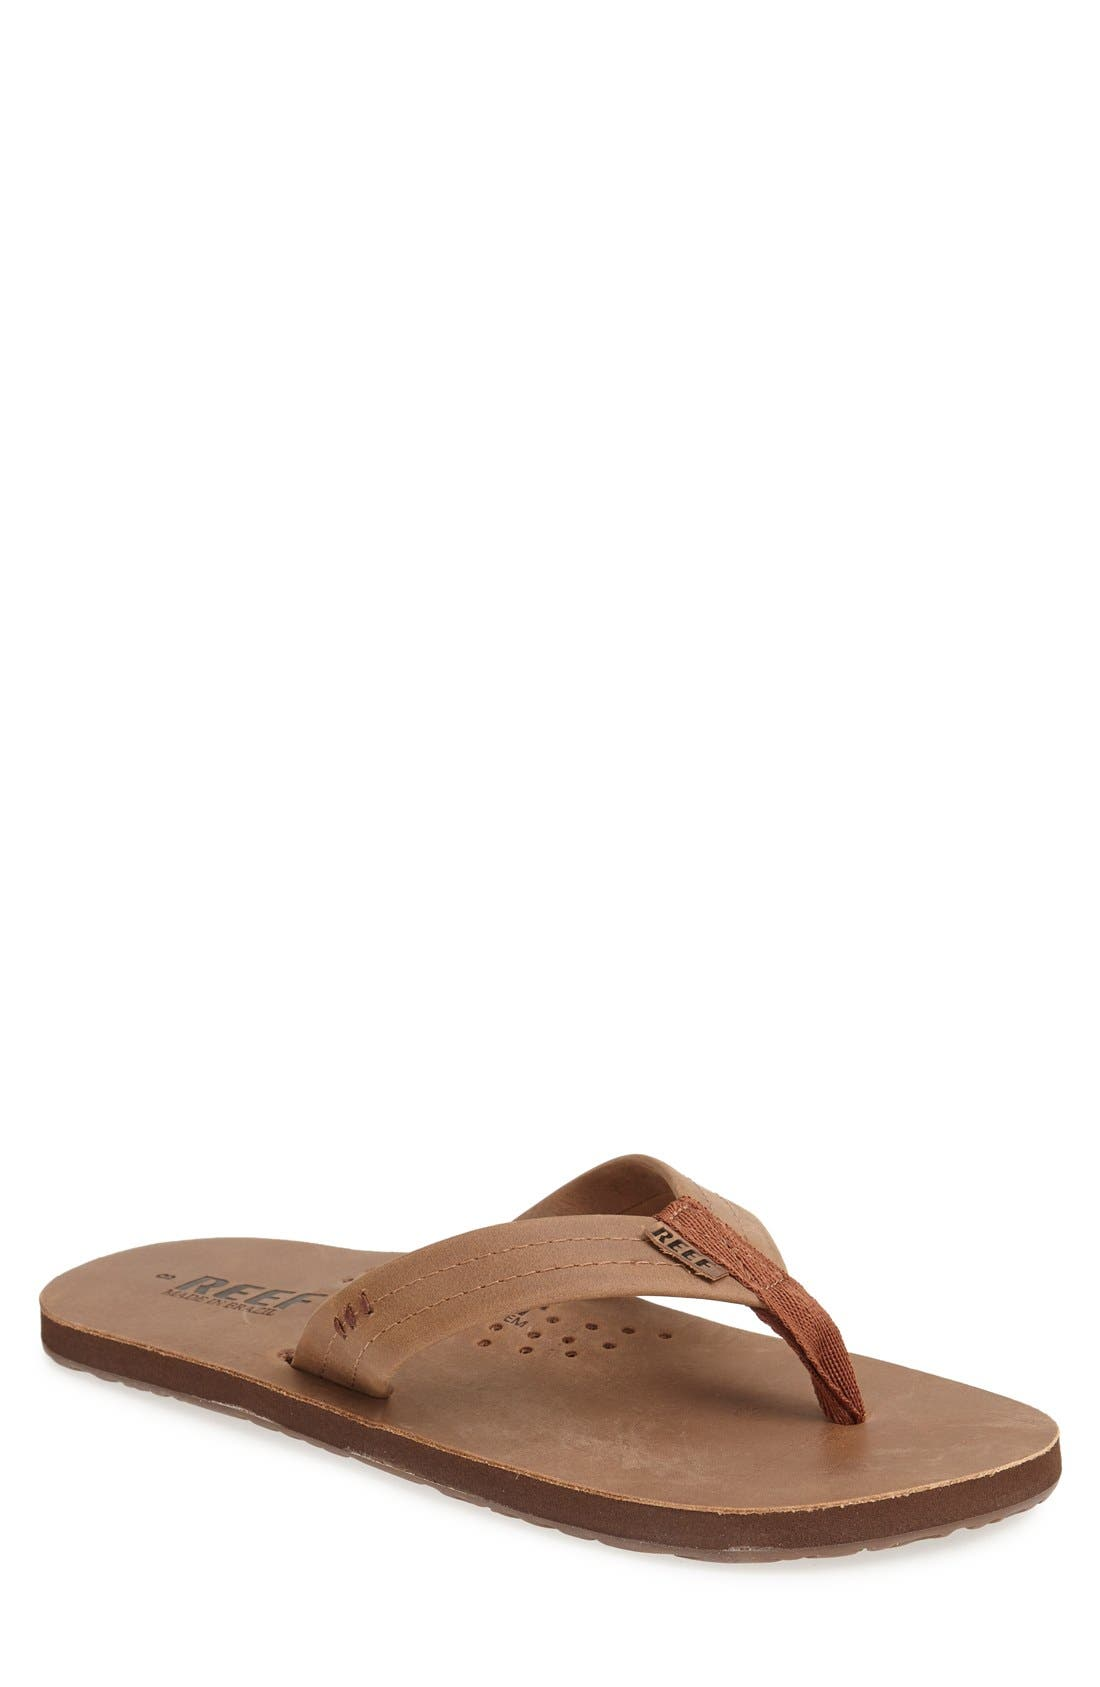 Alternate Image 1 Selected - Reef 'Draftsmen' Leather Flip Flop (Men)